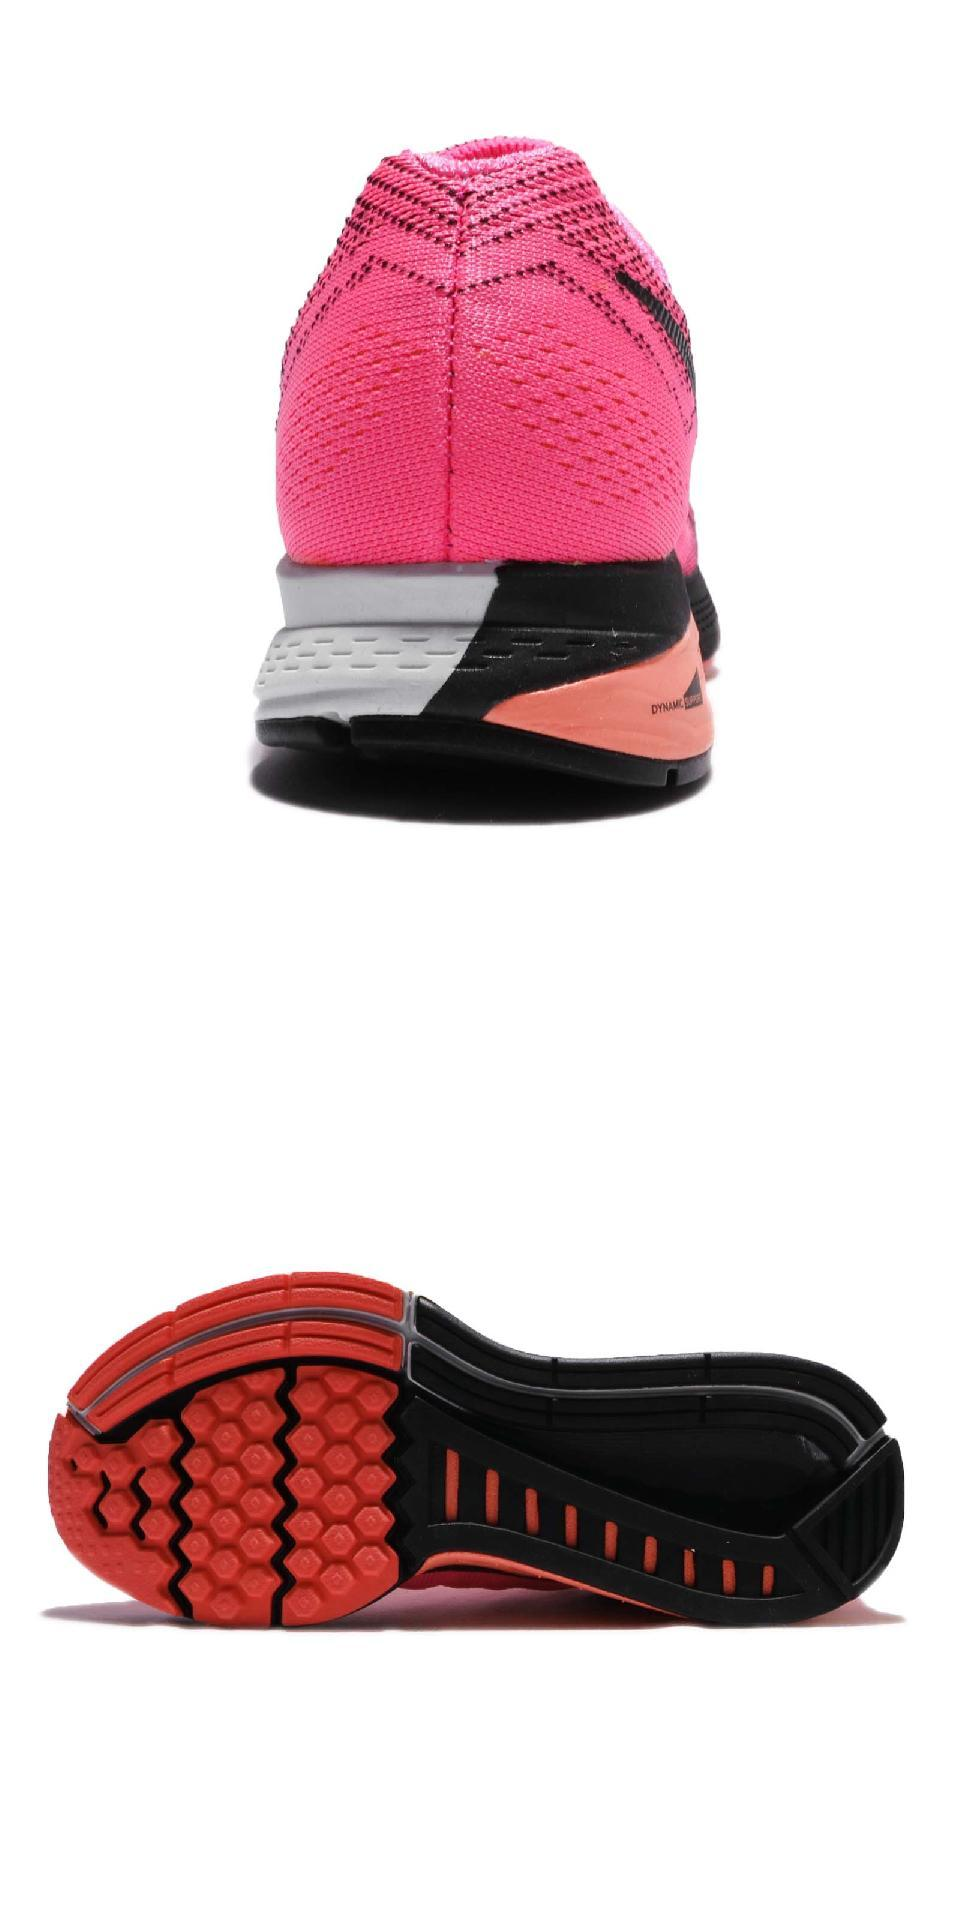 online store ddcb8 6935e BUTY NIKE AIR ZOOM STRUCTURE 18 683737 608 R.37,5 (7220725167)